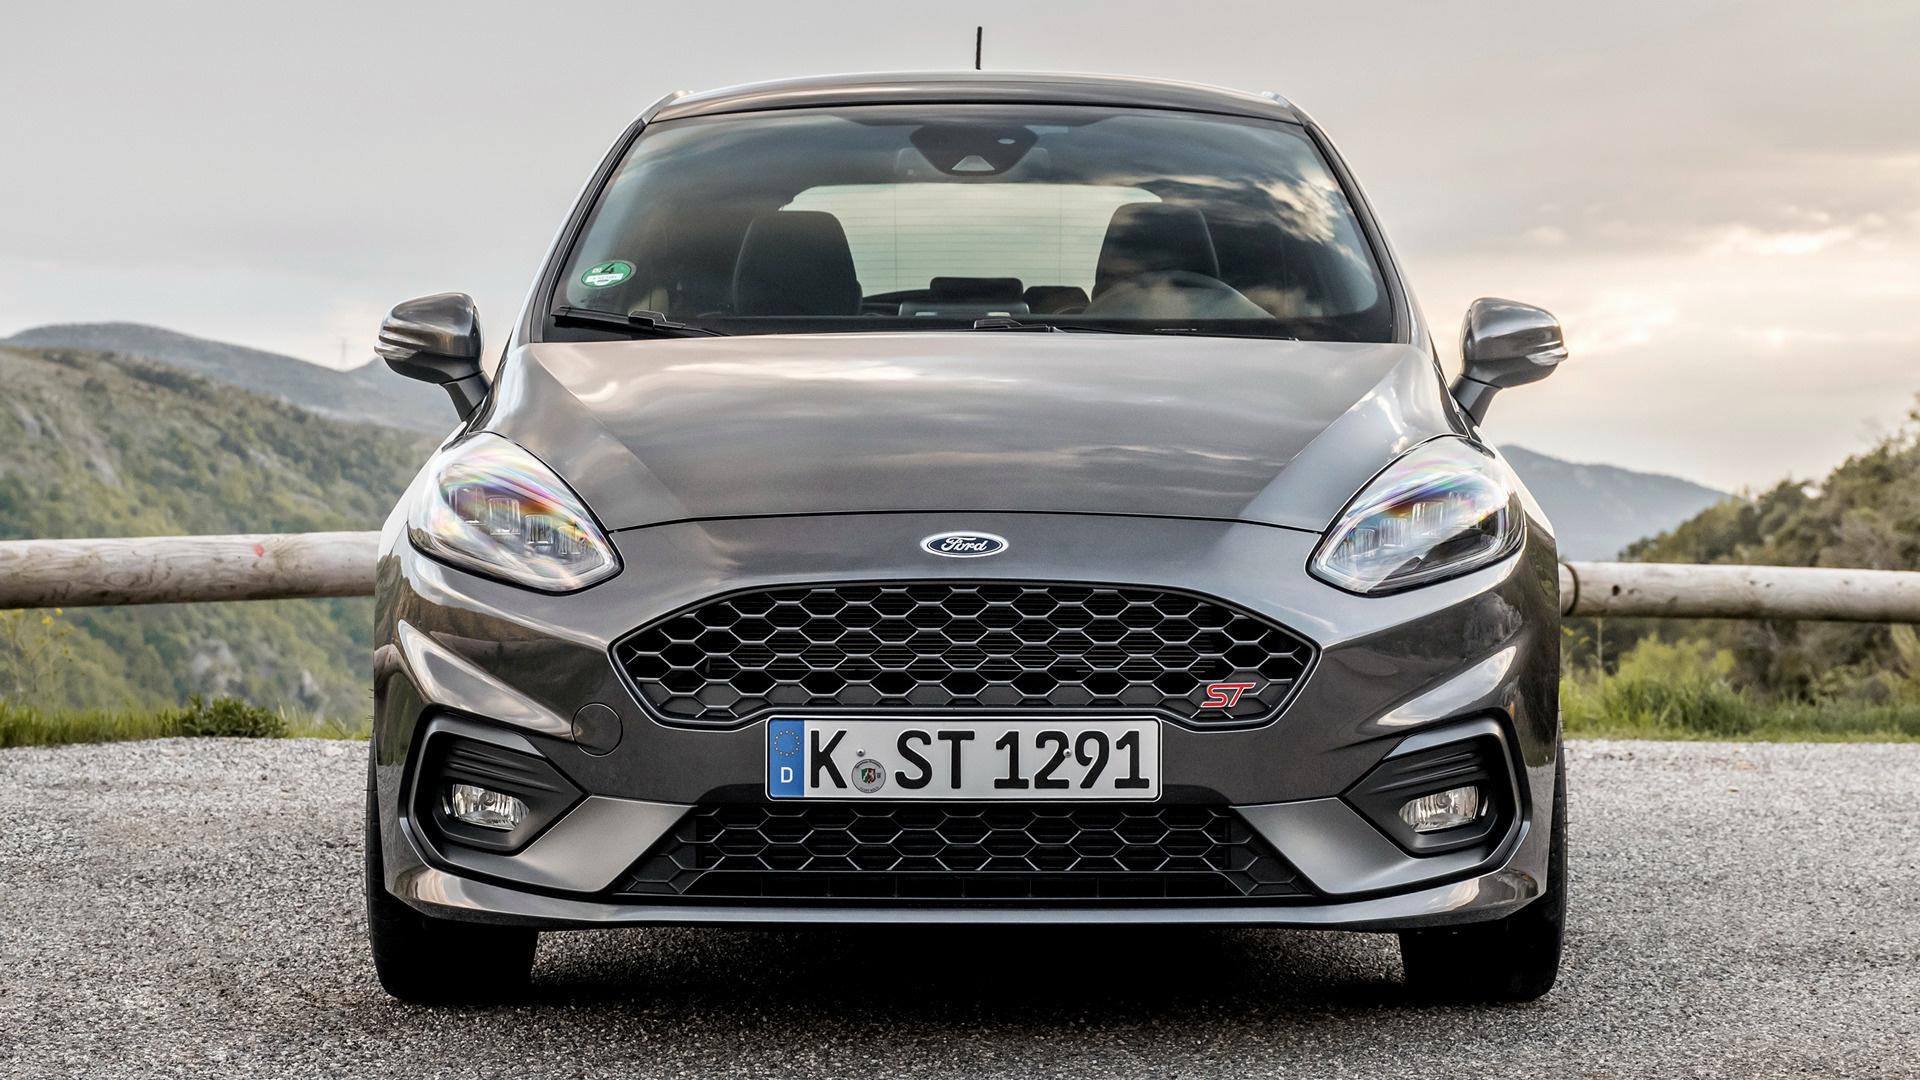 Ed Martin Gmc >> 2018 Ford Fiesta ST 5-door - Wallpapers and HD Images ...